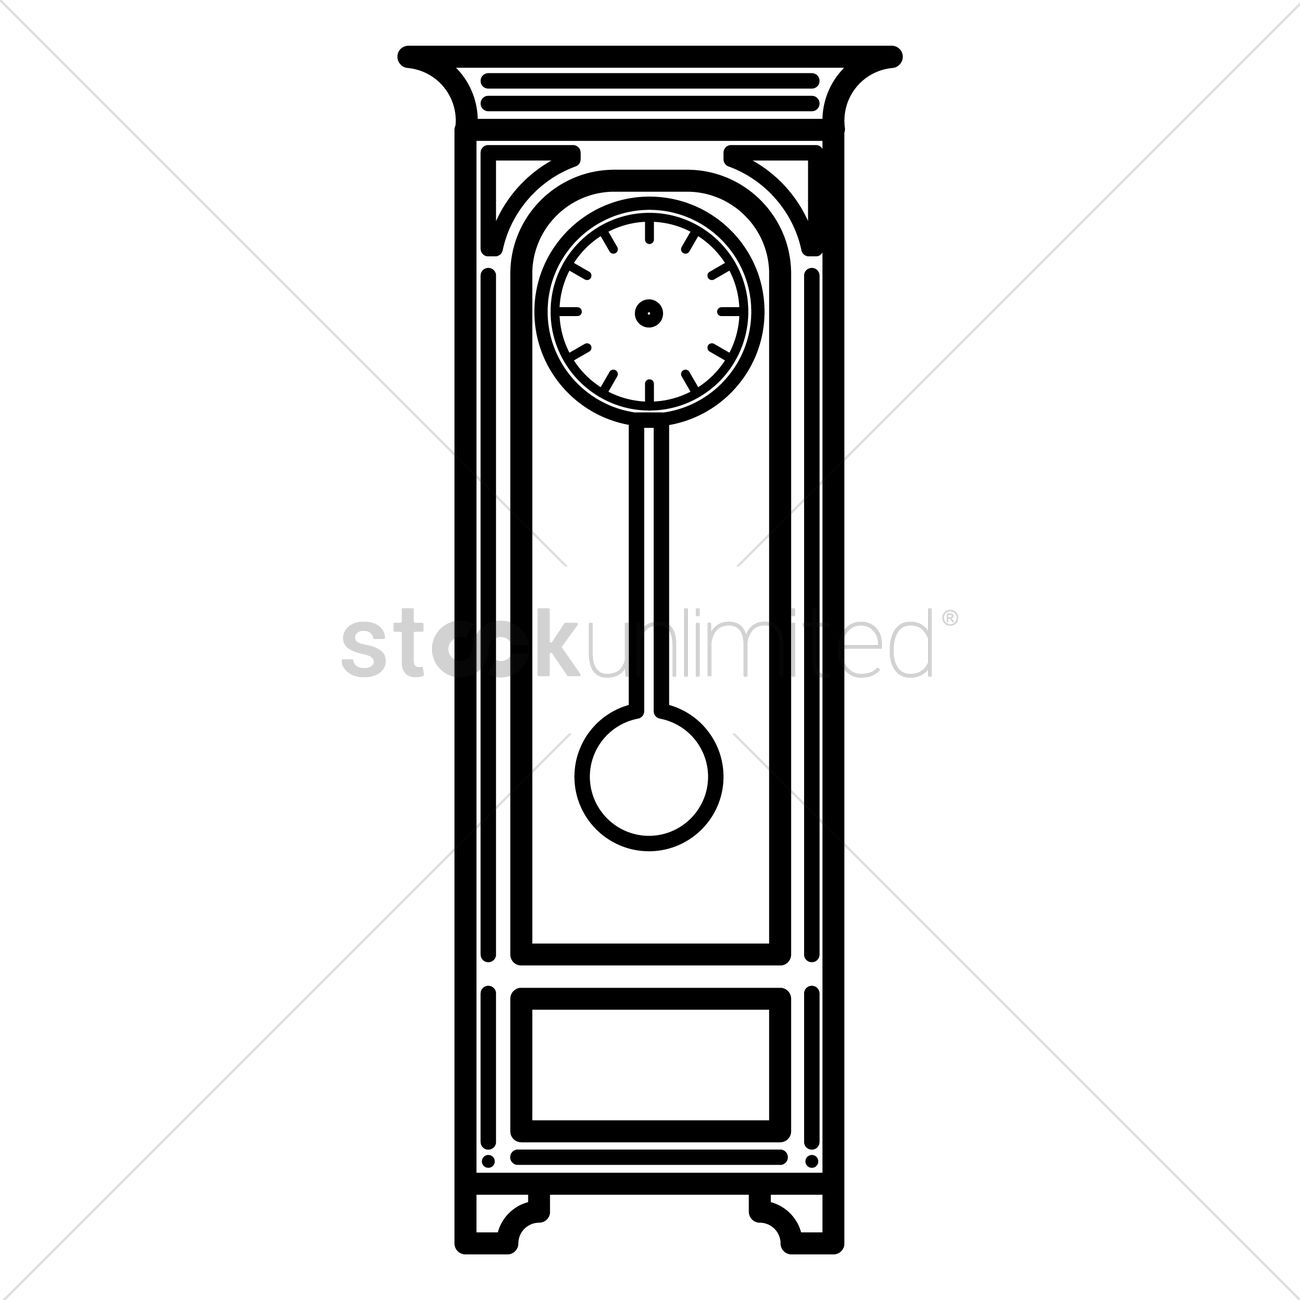 Grandfather clock Vector Image - 1348593 | StockUnlimited